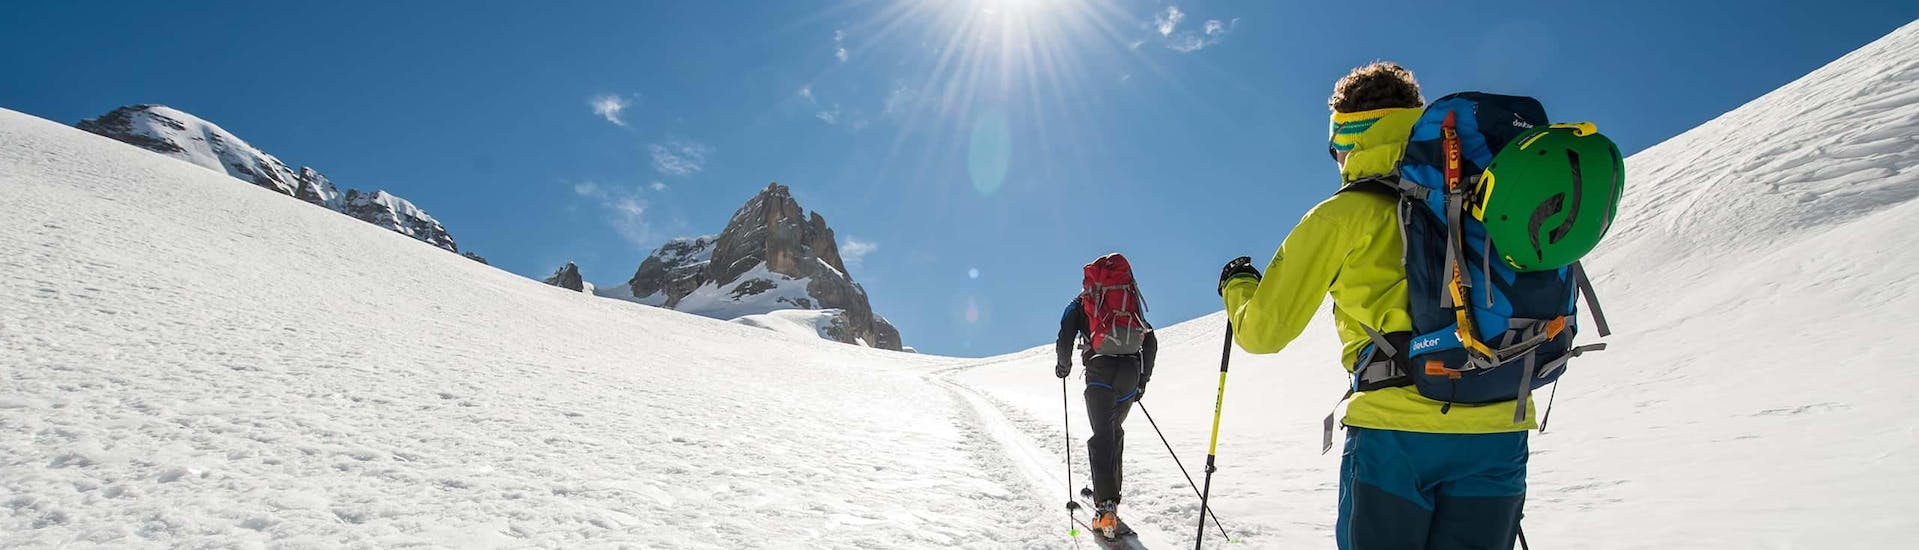 A skier following his Skitour Wildspitze 3776m from Freeride Hotspot up to the top of the mountain while out ski touring.